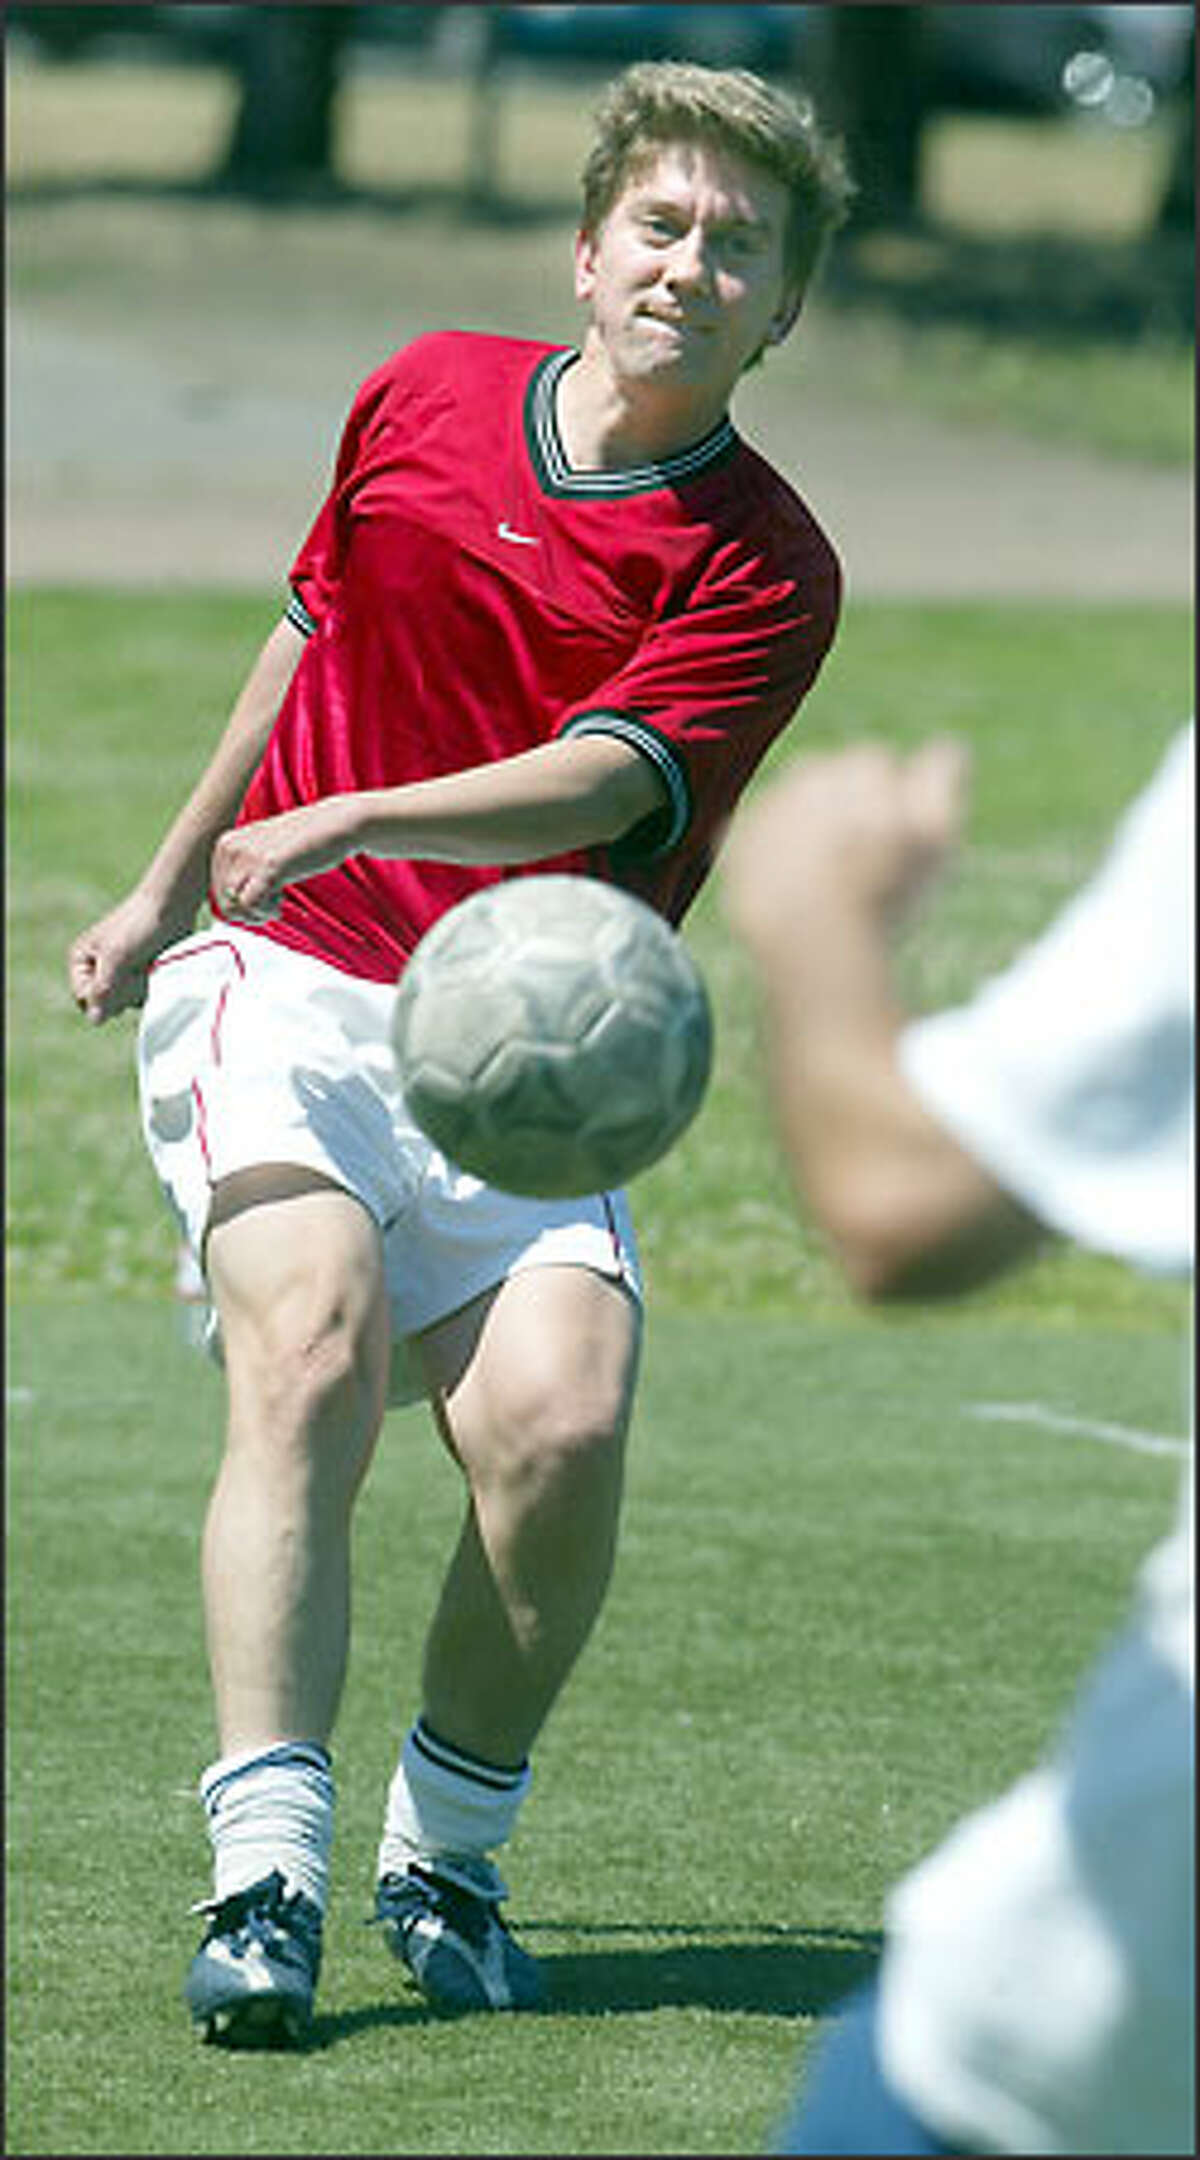 Mike Vaska, a Republican candidate for state attorney general, plays soccer not only to stay in shape, but also to stay connected to his family's Russian immigrant roots. He plays weekly in a pickup game in the Queen Anne Bowl.